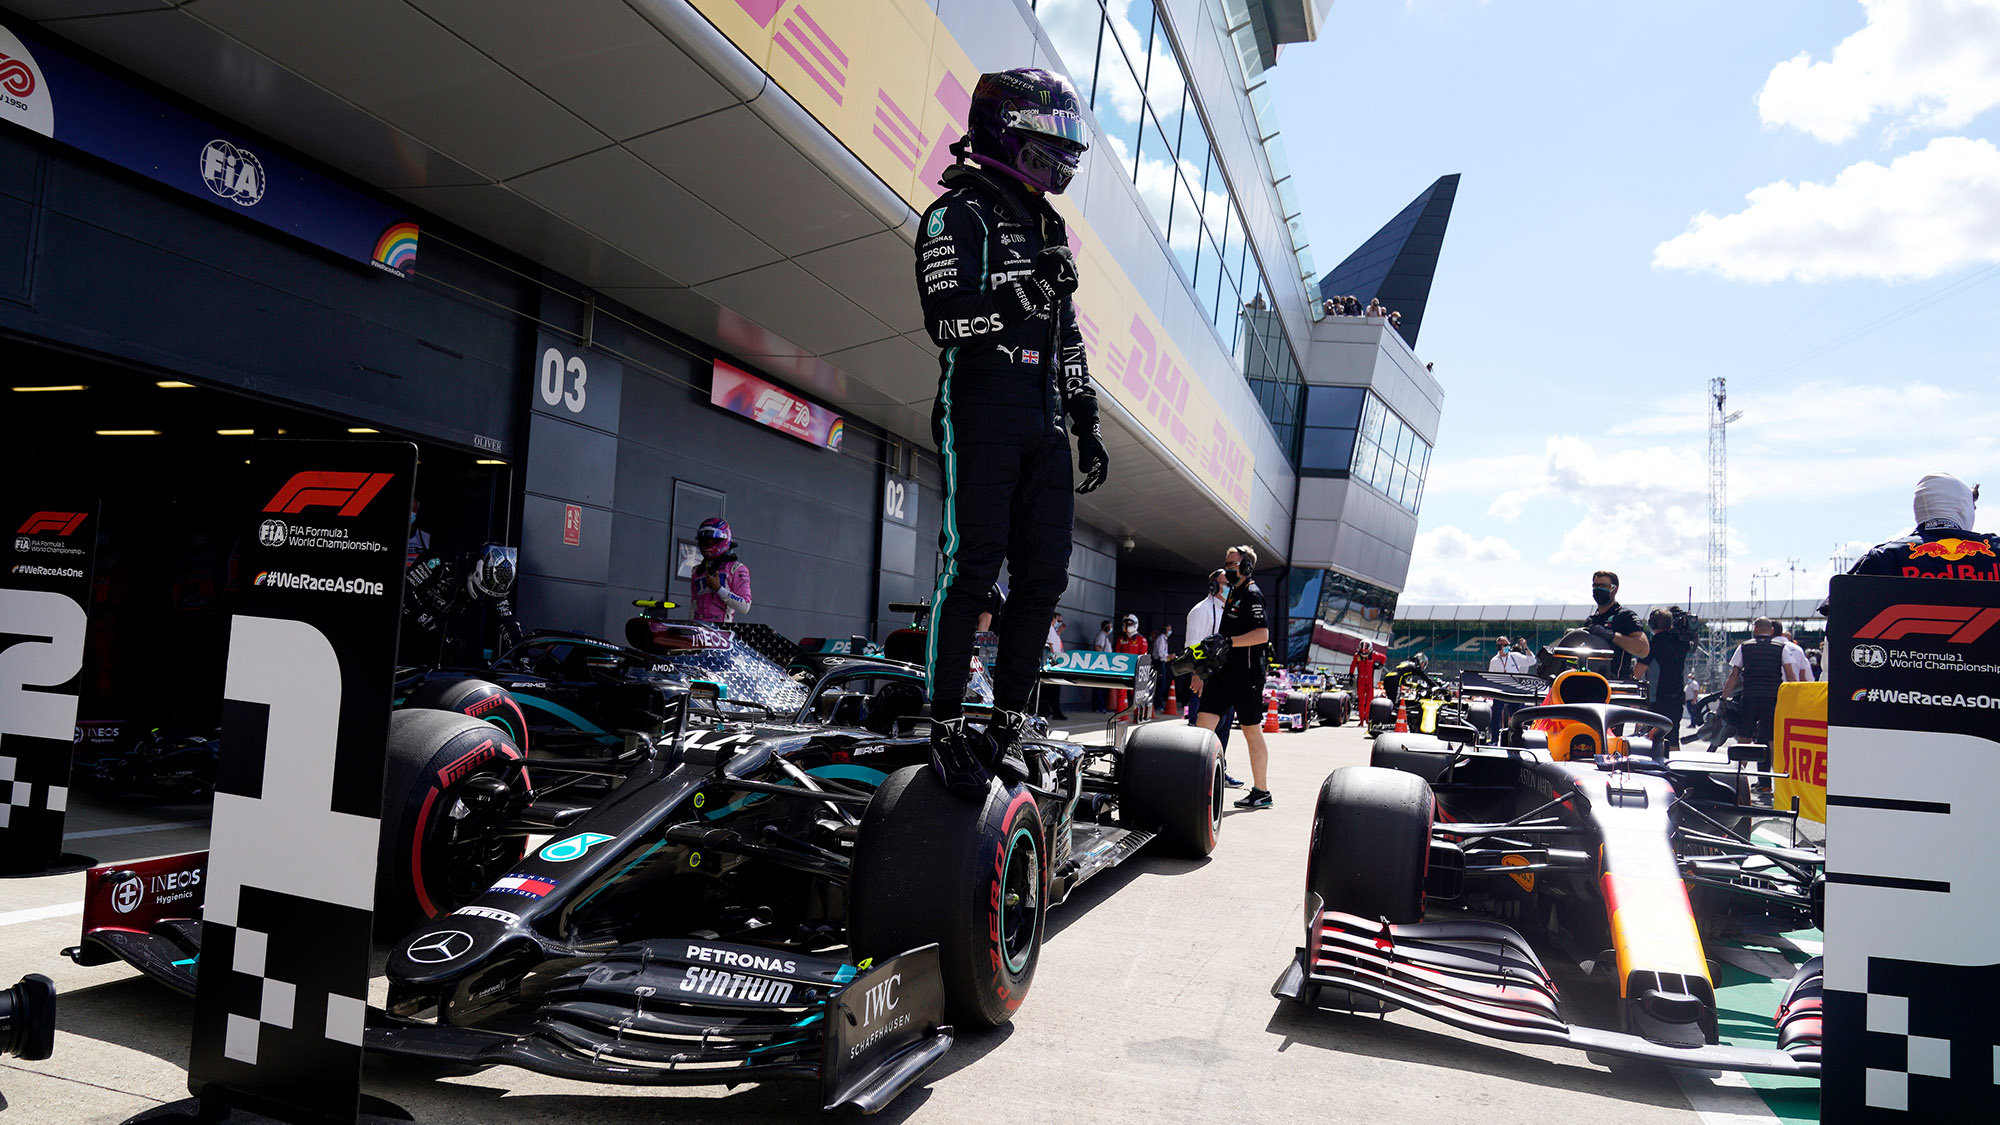 Lewis Hamilton stands on his Mercedes after qualifying on pole for the 2021 British Grand Prix